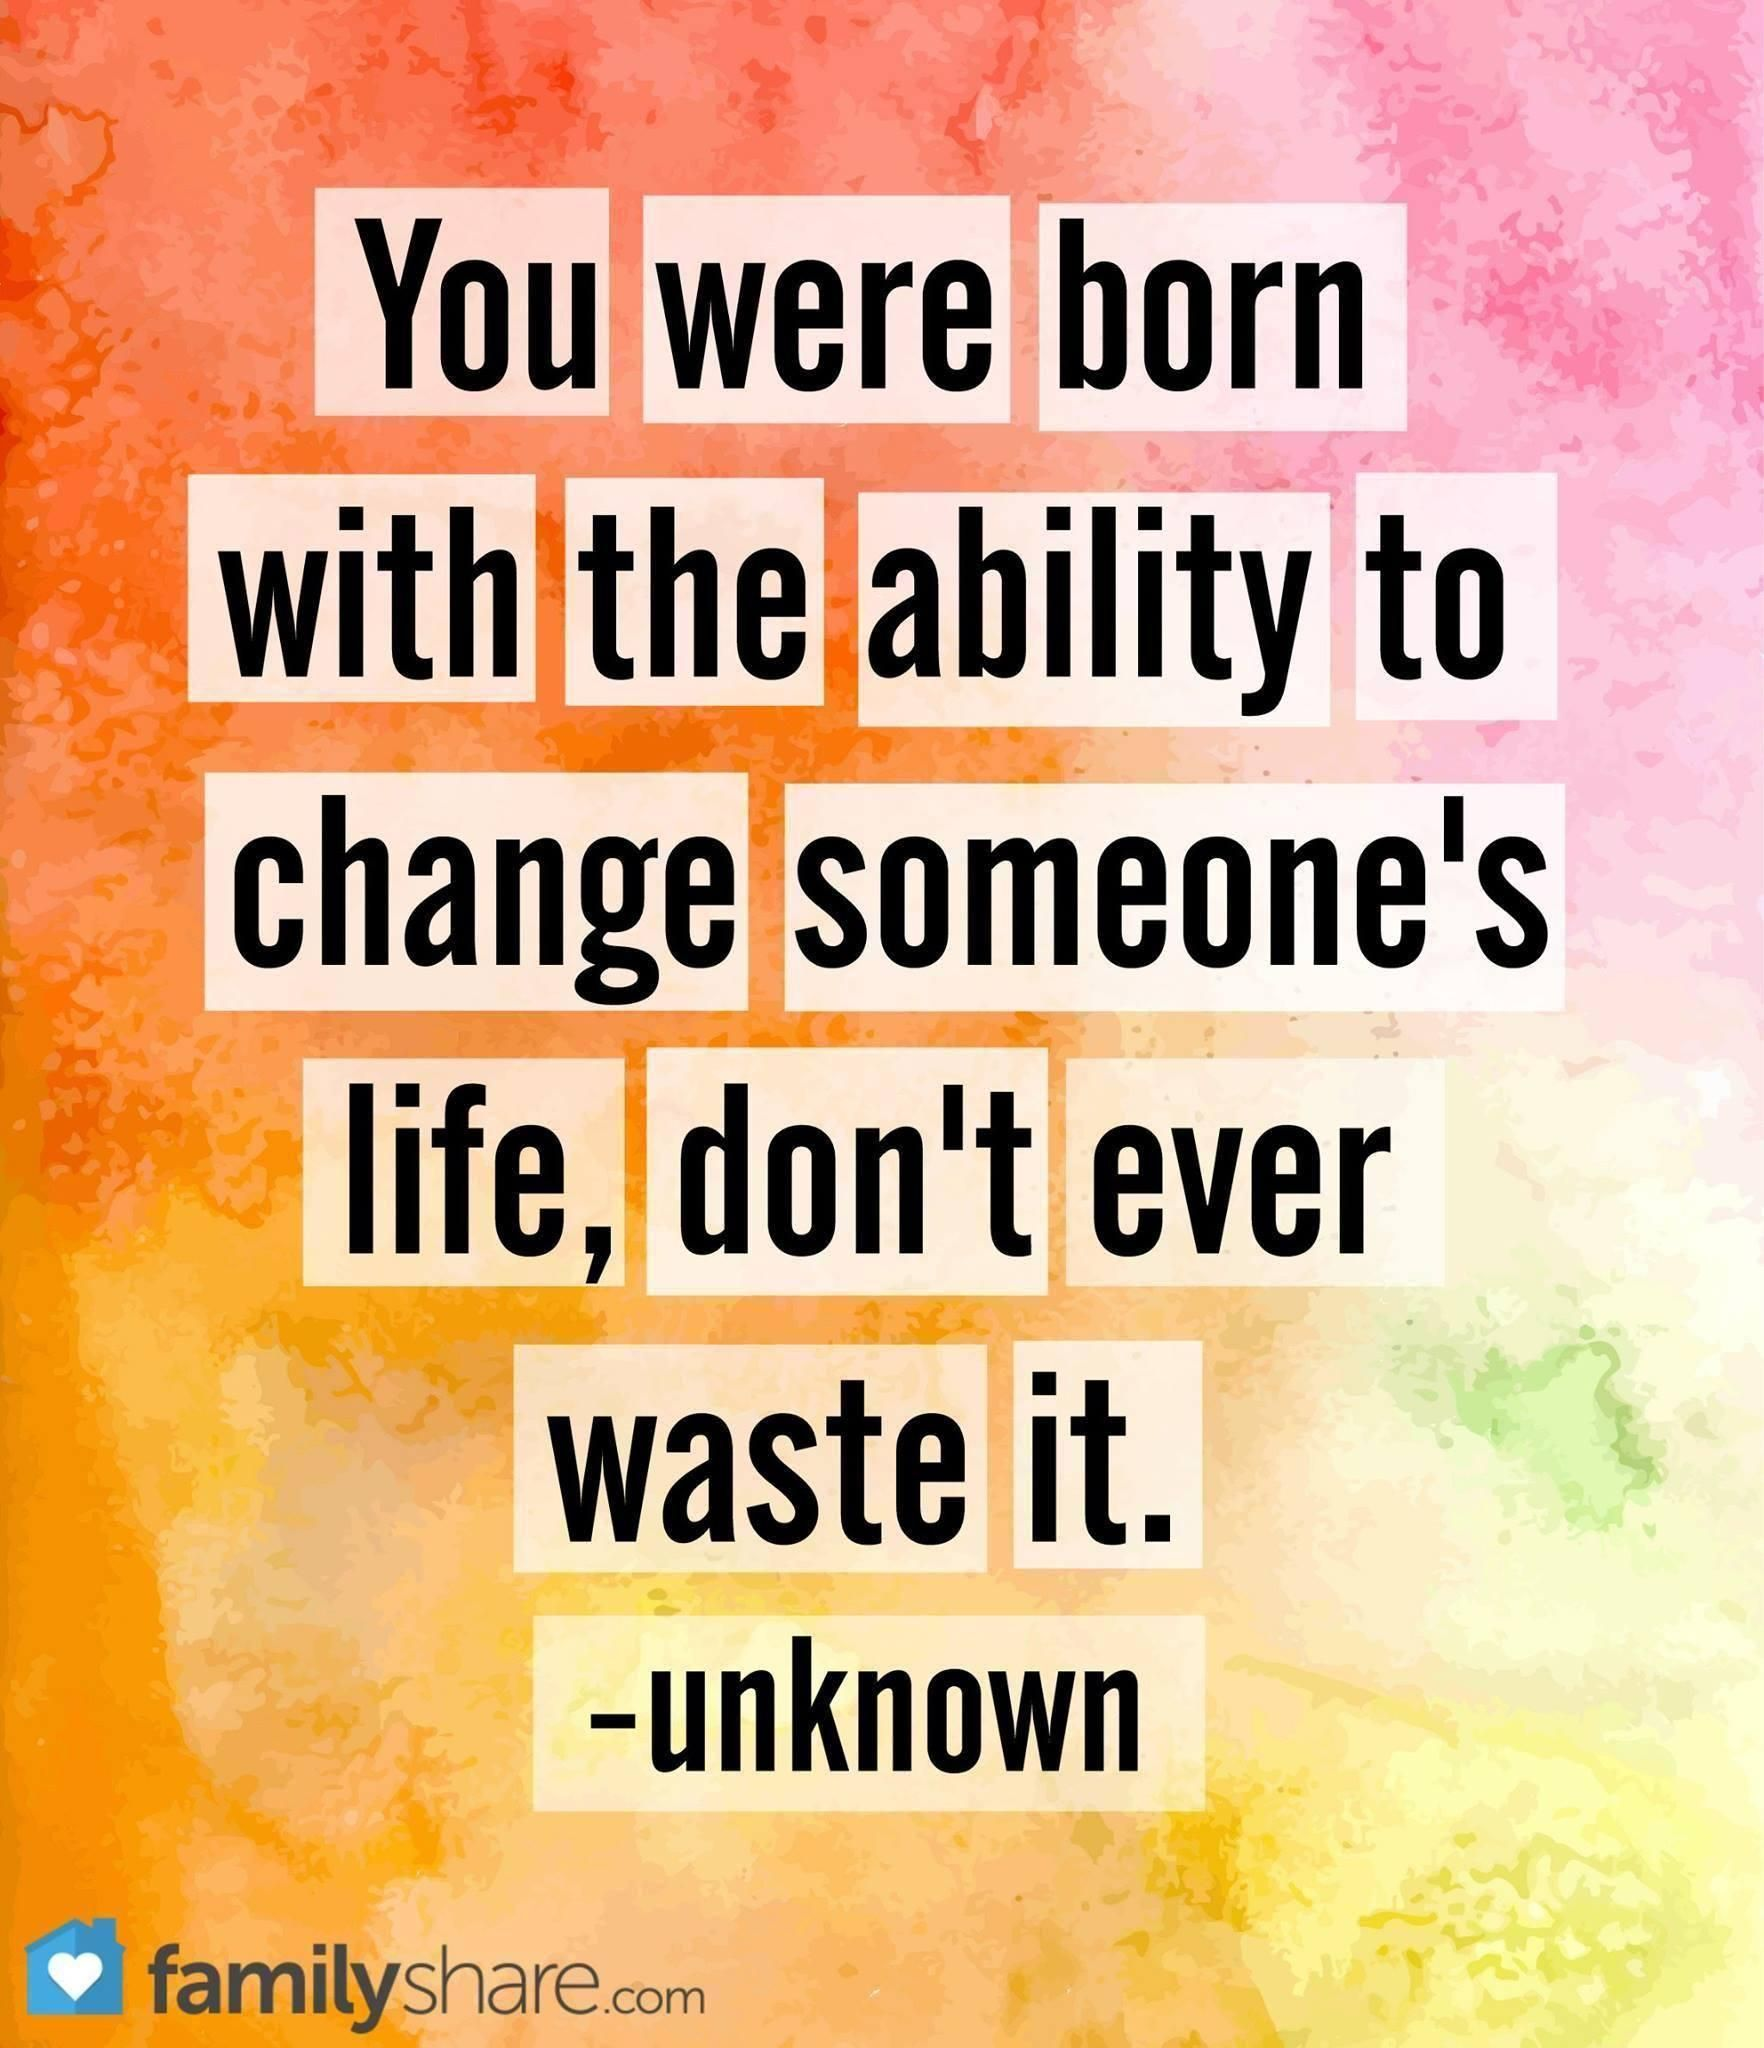 Unknown Quotes About Life You Were Born With The Ability To Change Someone's Life Don't